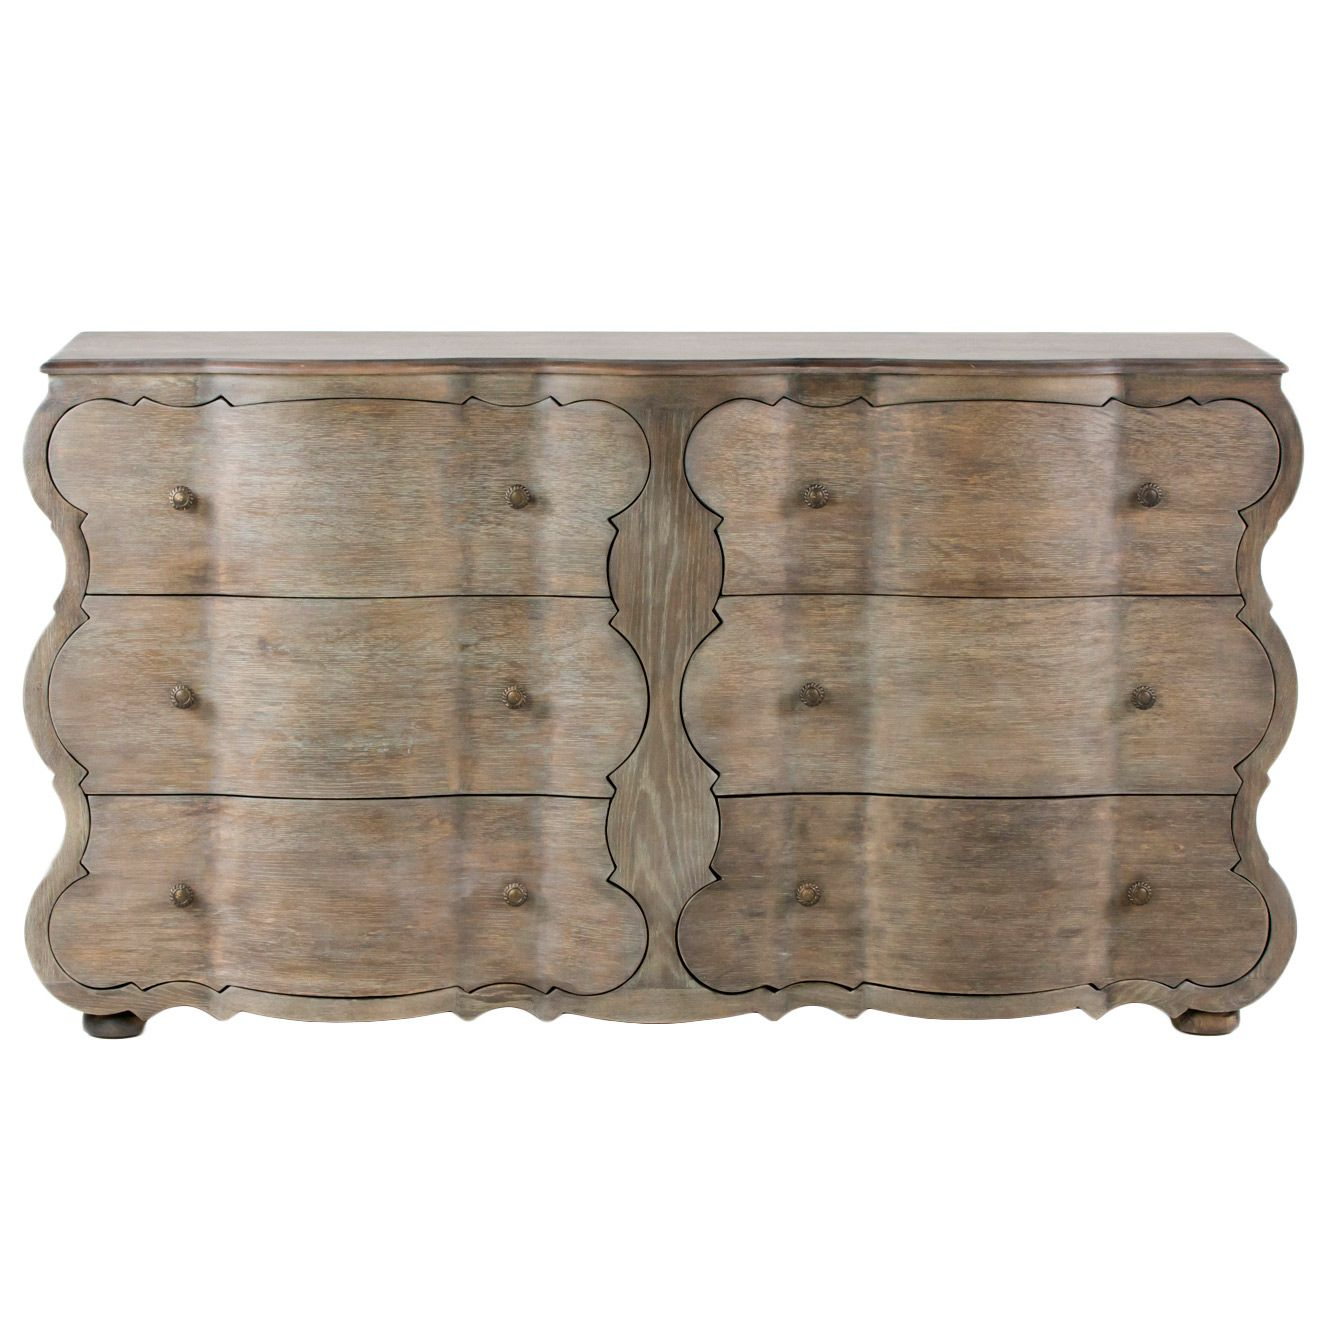 The melrose chest from gabby furniture completes a bedroom with